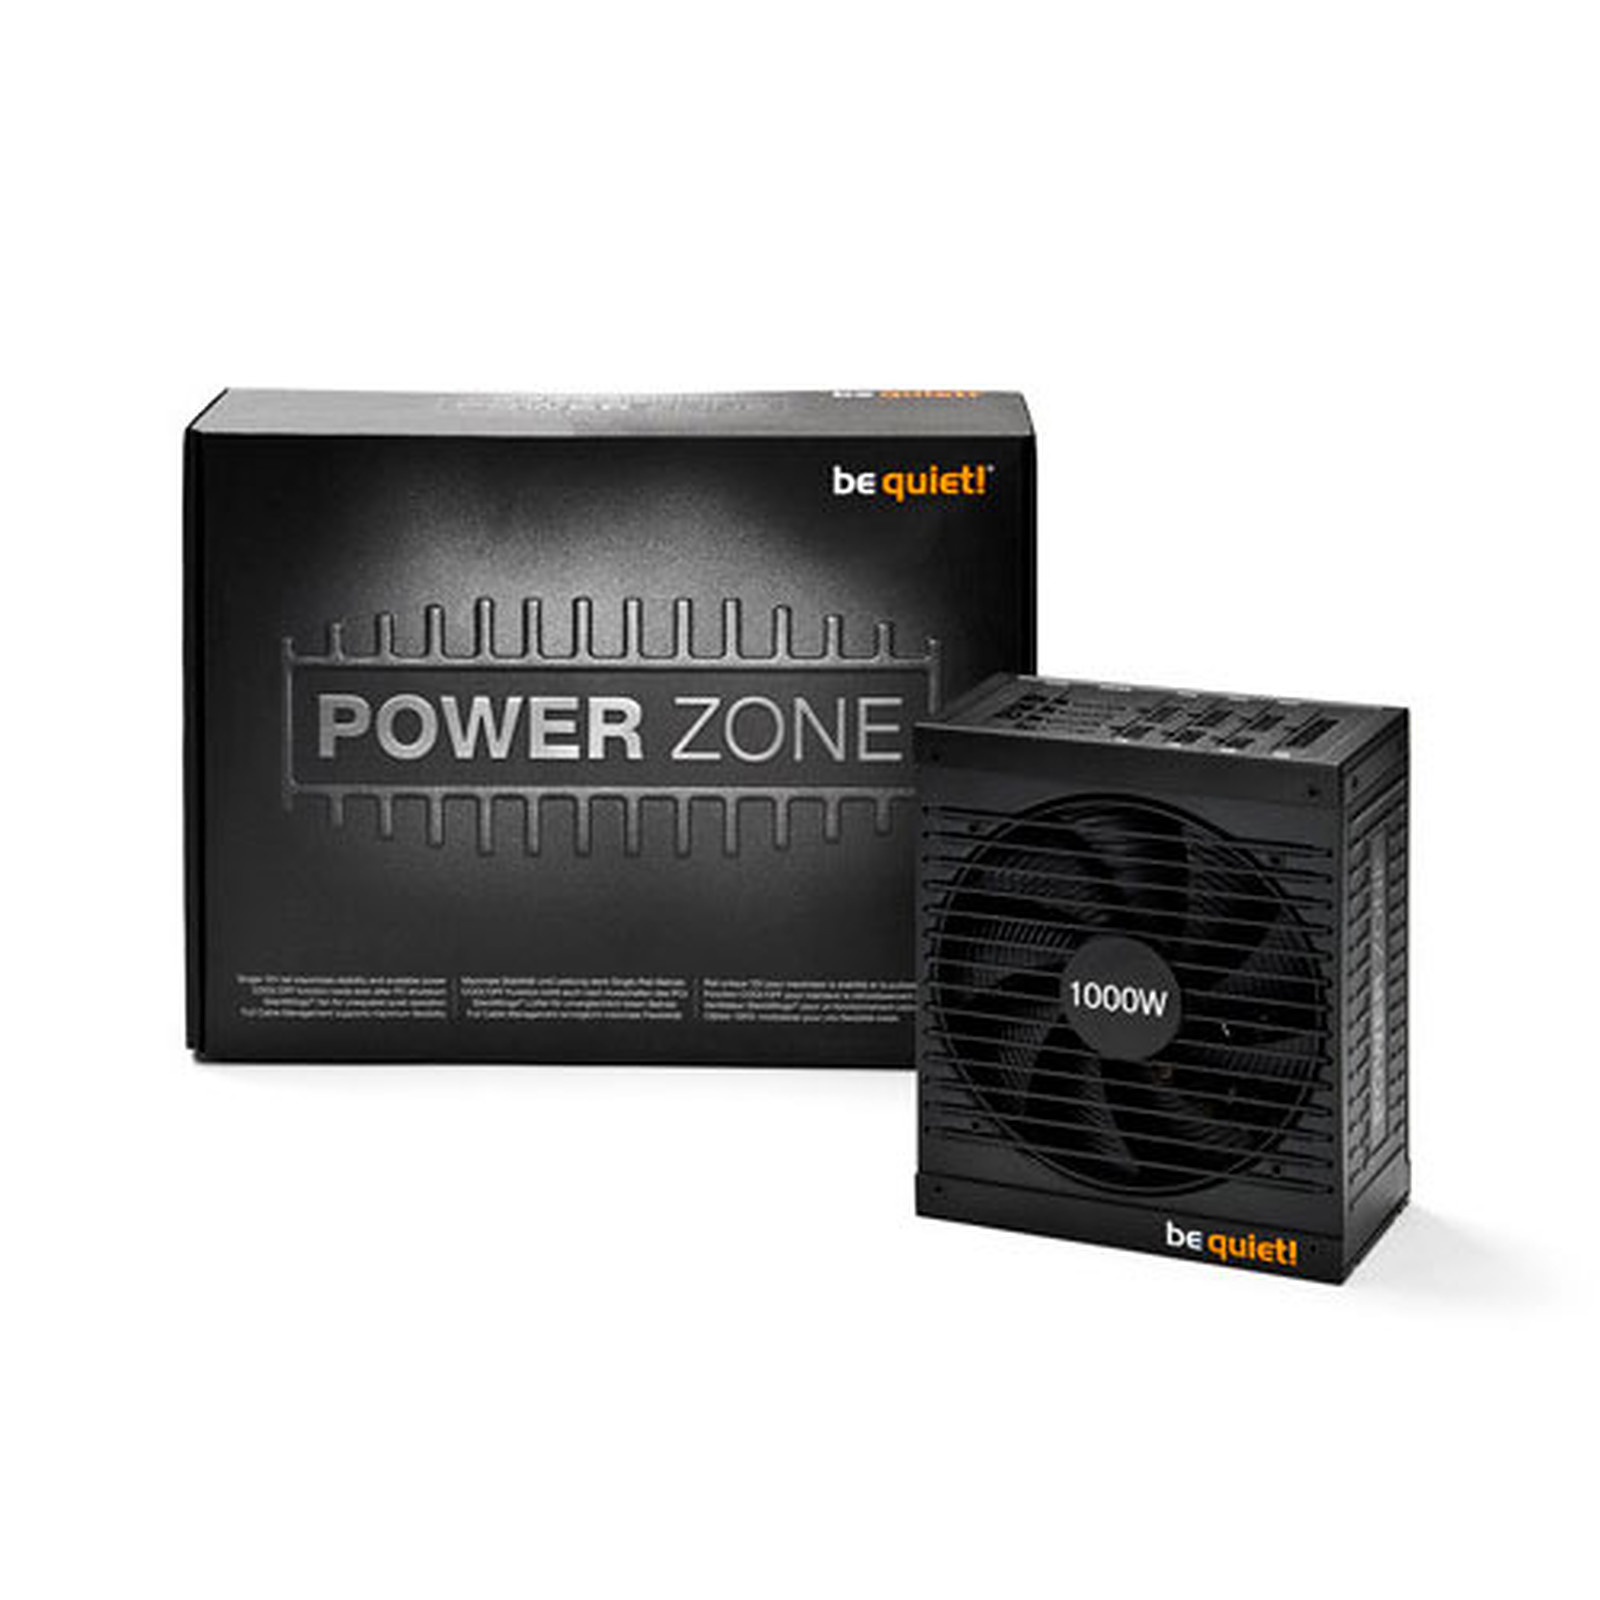 be quiet! Power Zone 1000W 80PLUS Bronze